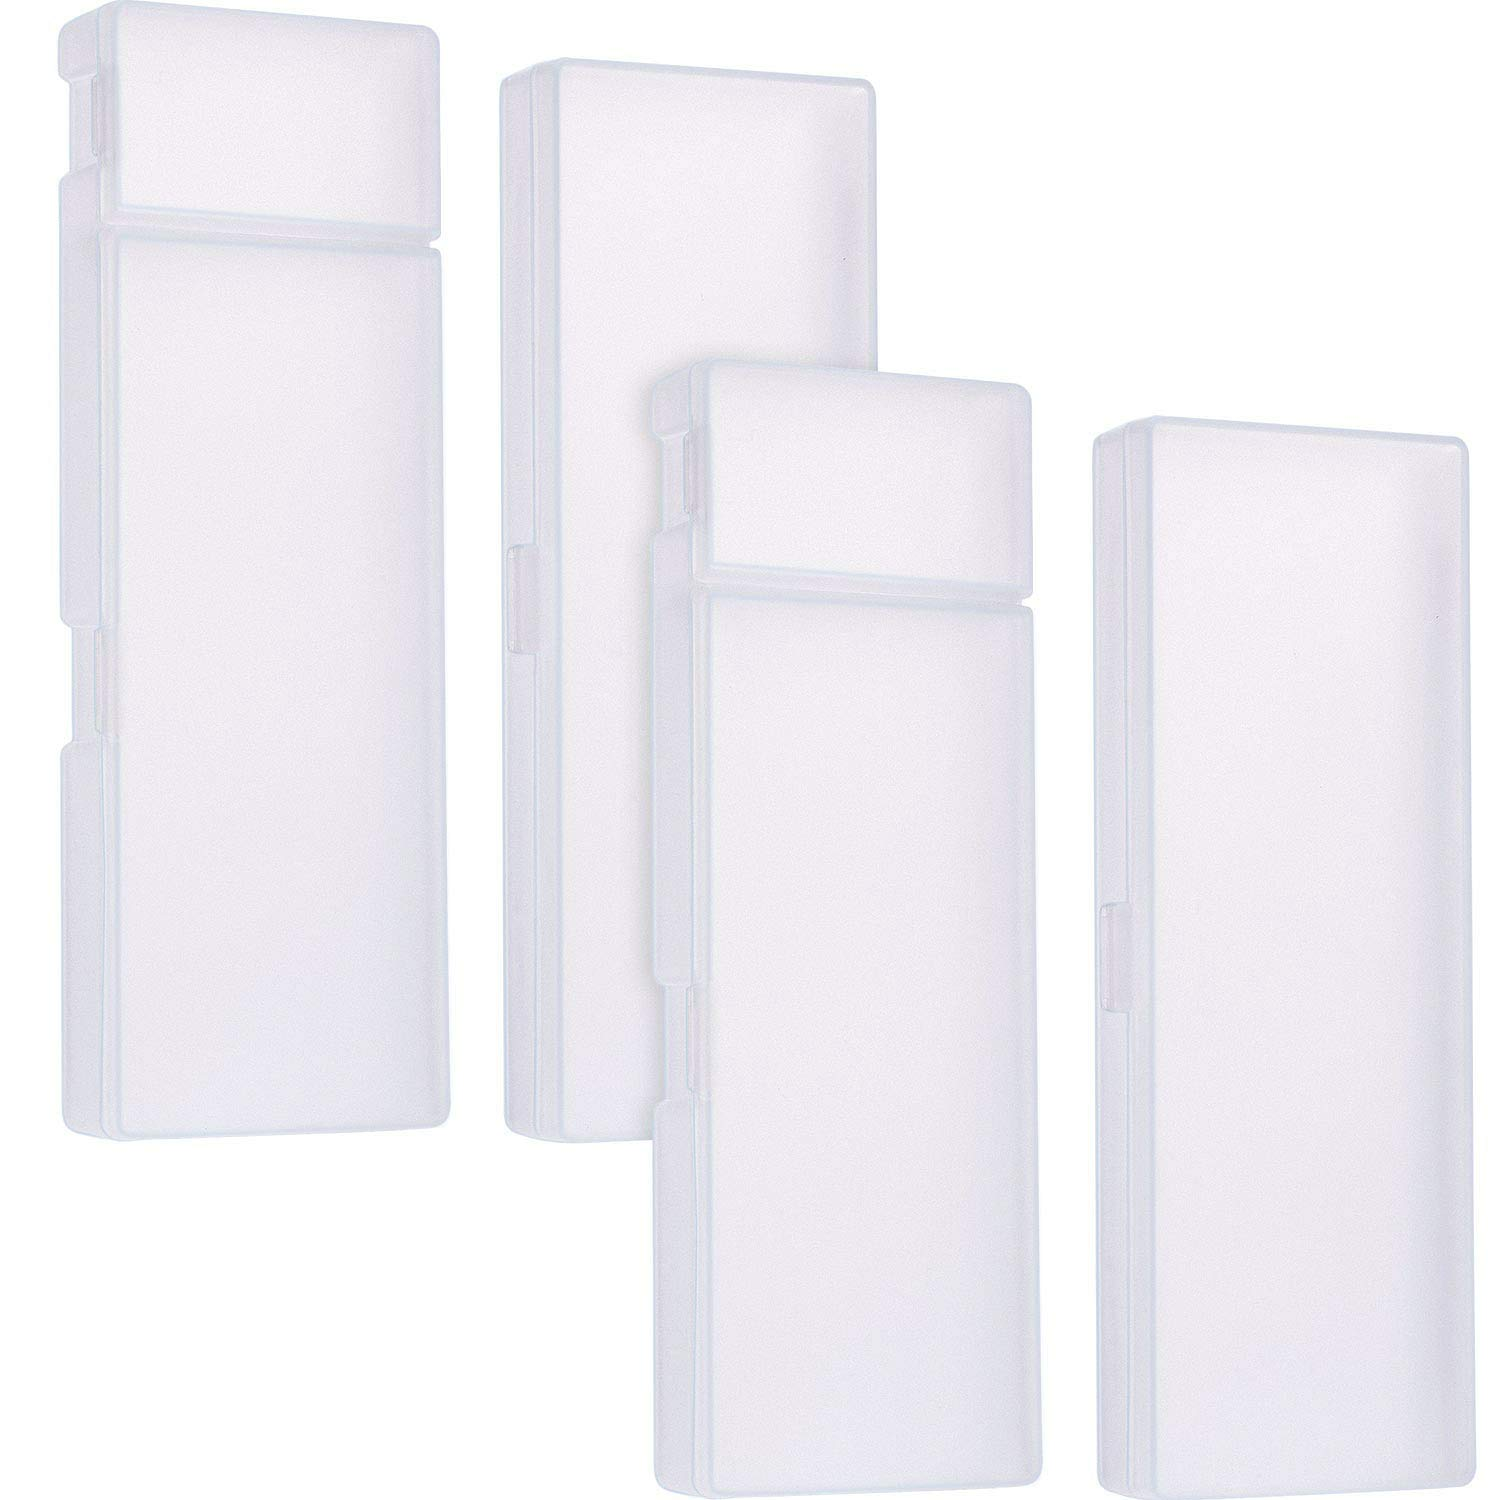 Leinuosen 4 Piece 2 Size Clear White Plastic Pencil Case Pen Stationery Storage Box, Divided Compartments with Separate Lids, Large and Medium